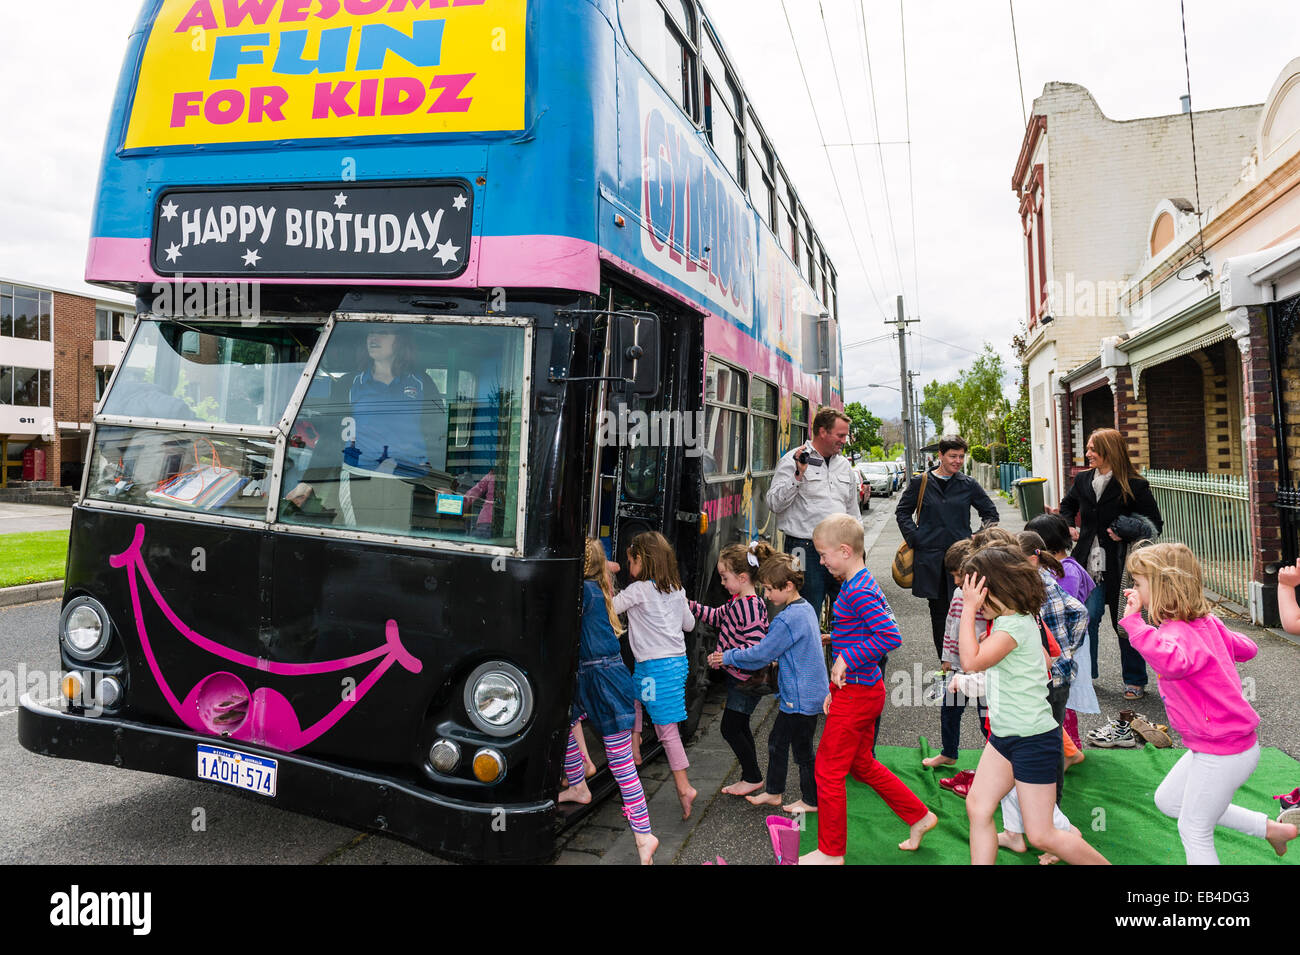 Children Rush Onto A Double Decker Bus Converted Into A Birthday Party Venue For Gymnastic Activities Stock Photo Alamy